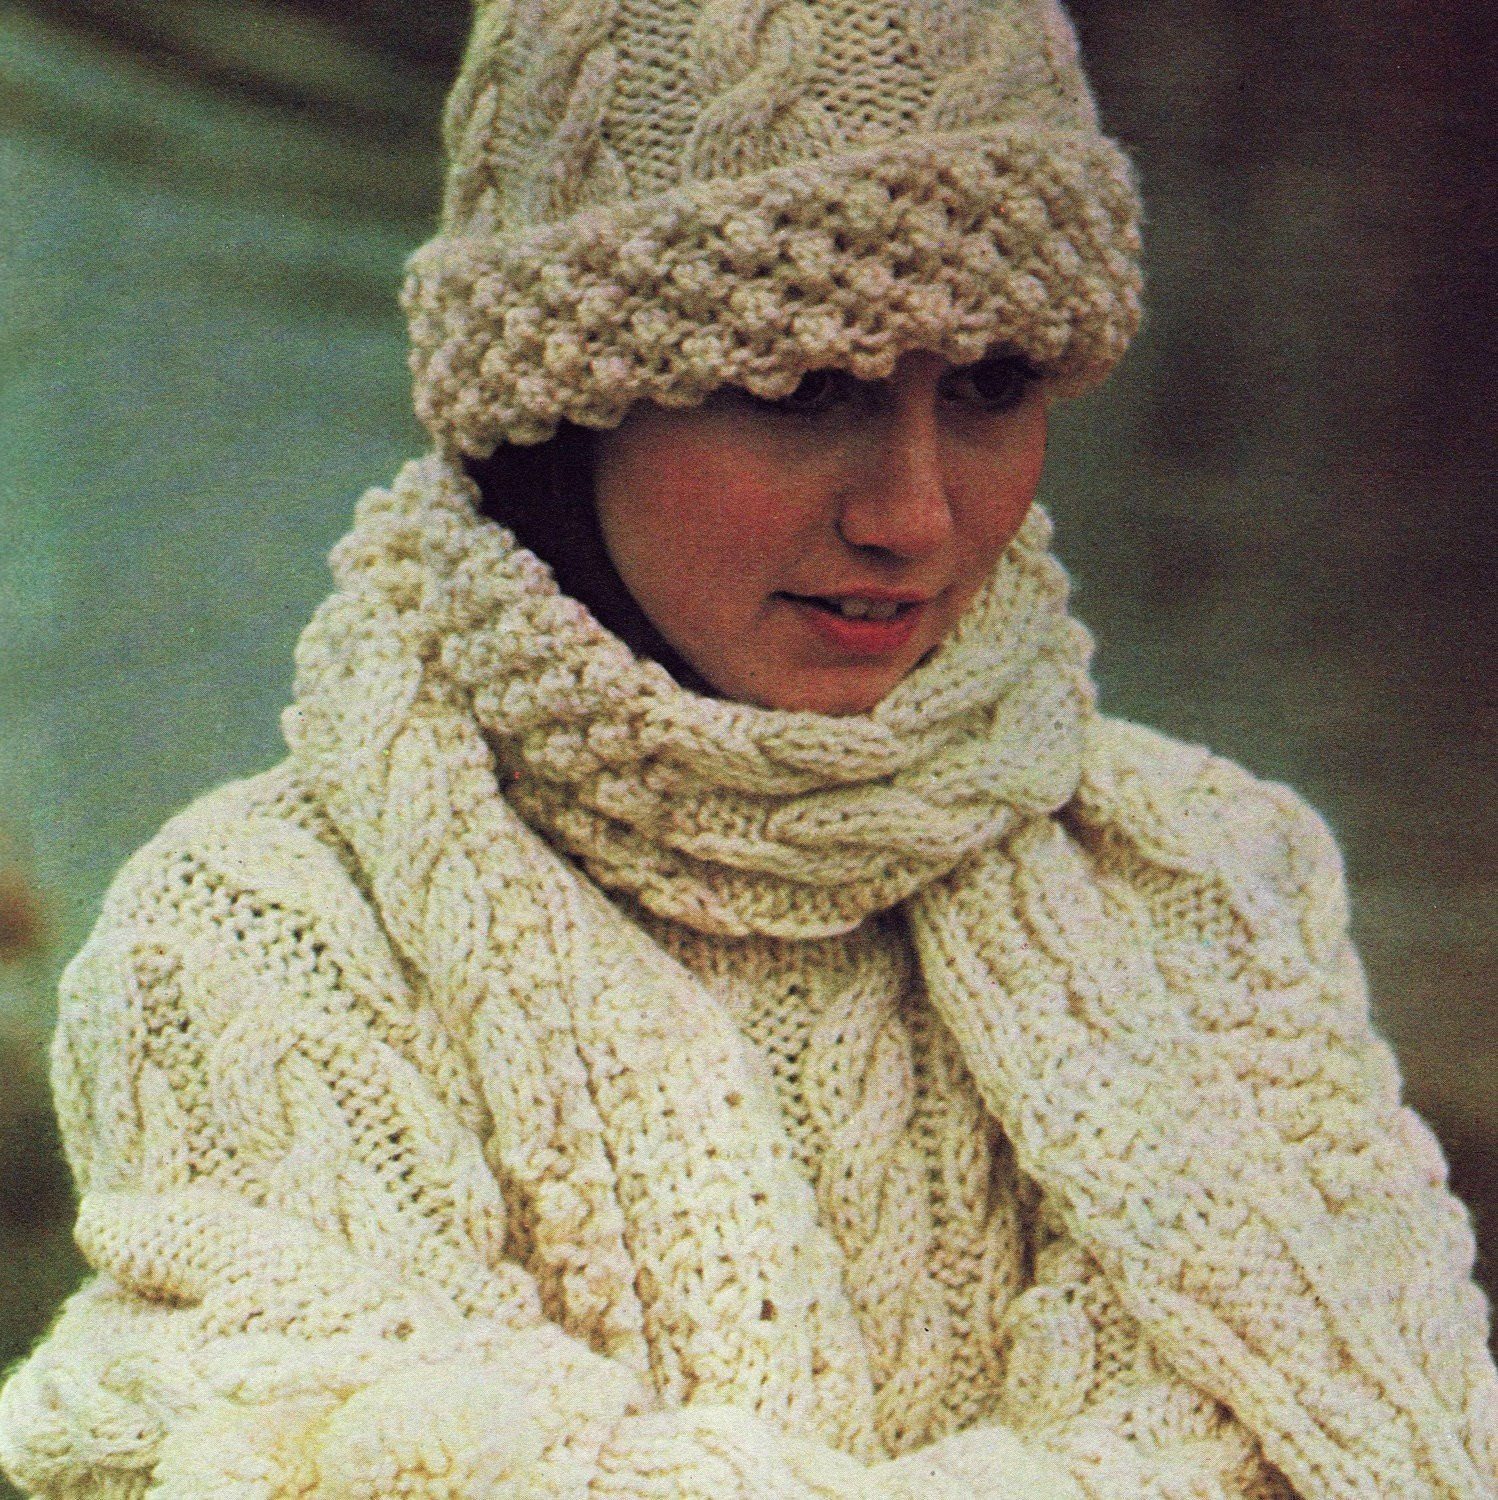 Lovely Knit Pattern Hat Scarf Free Patterns Crochet Hat and Scarf Patterns Free Of Amazing 47 Pics Crochet Hat and Scarf Patterns Free